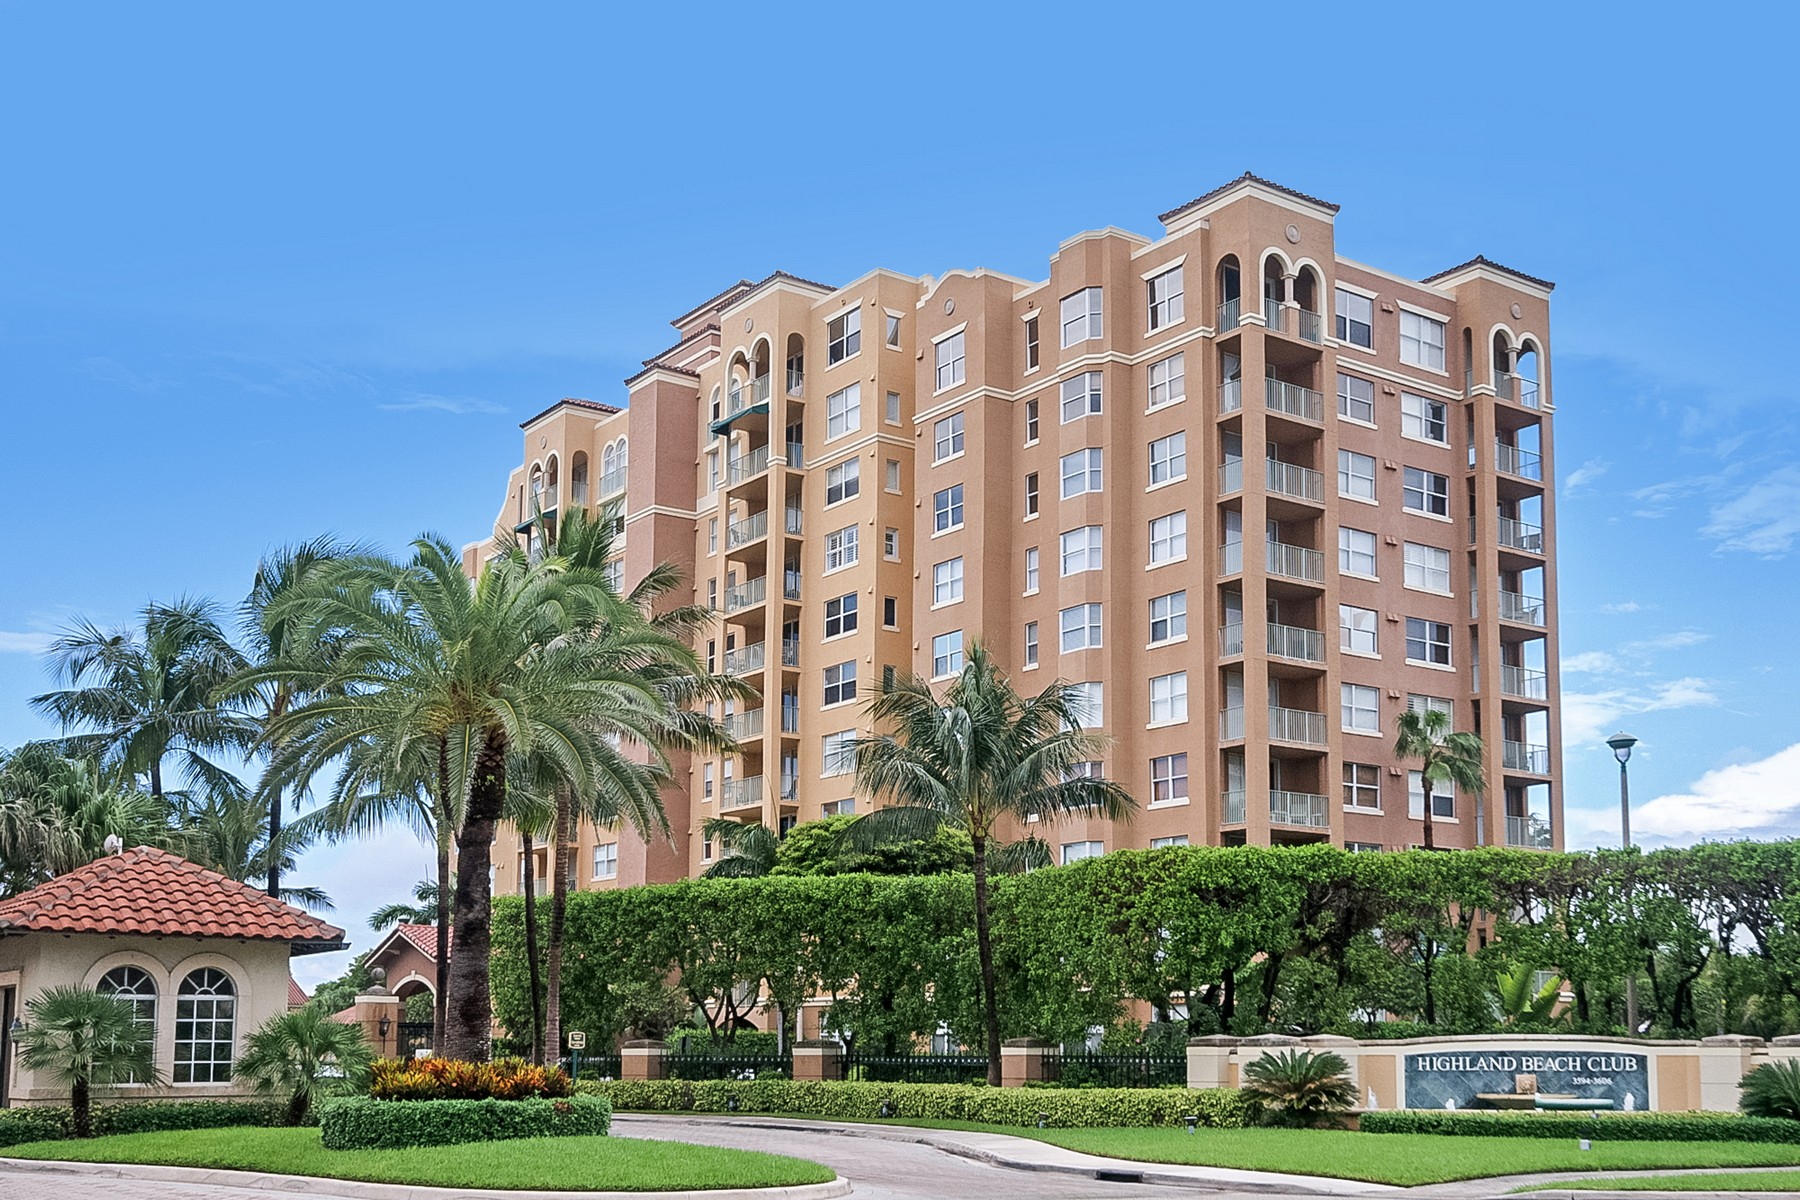 Property Of 3594 S Ocean Blvd , Lph1007, Highland Beach, FL 33